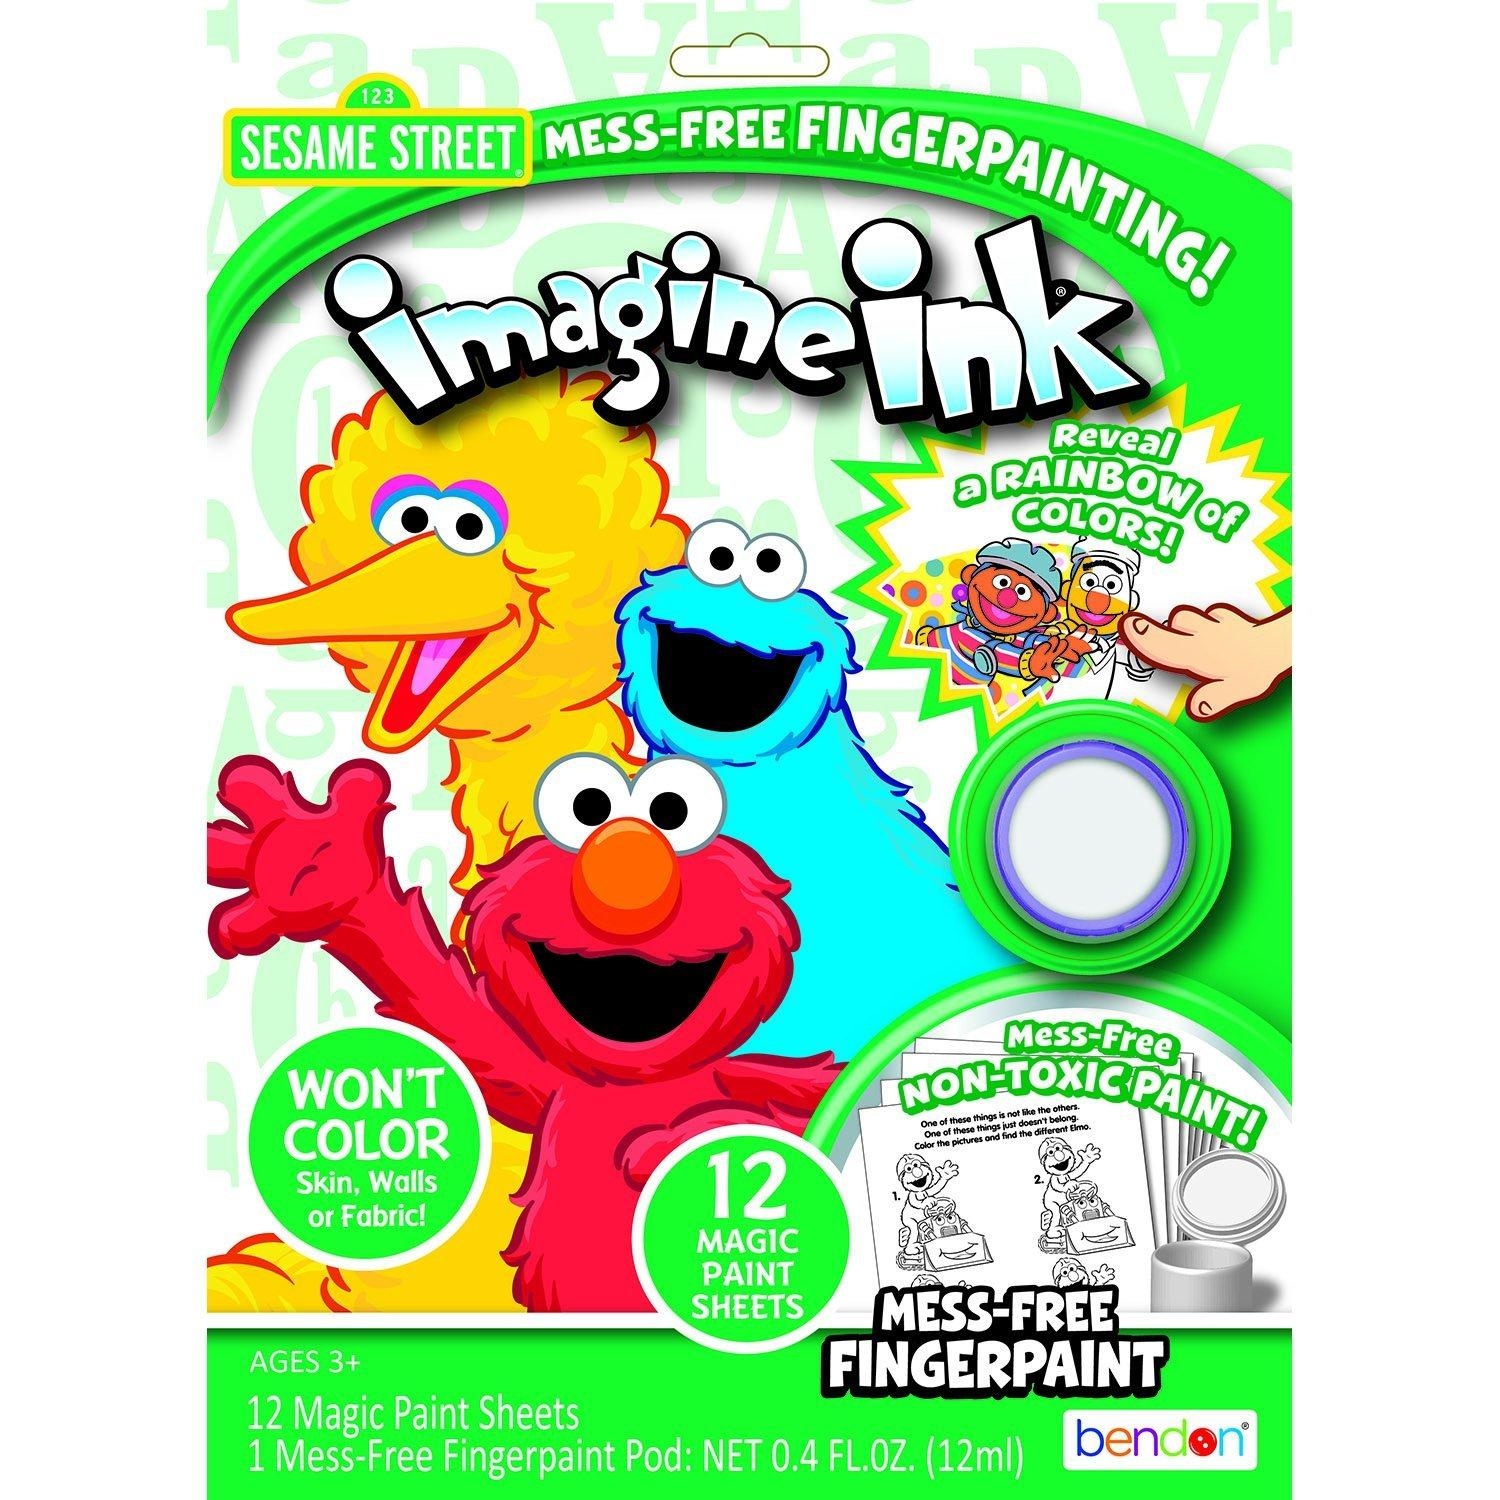 Amazon.com: Bendon Inside Out Magic Ink Activity Book: Toys & Games